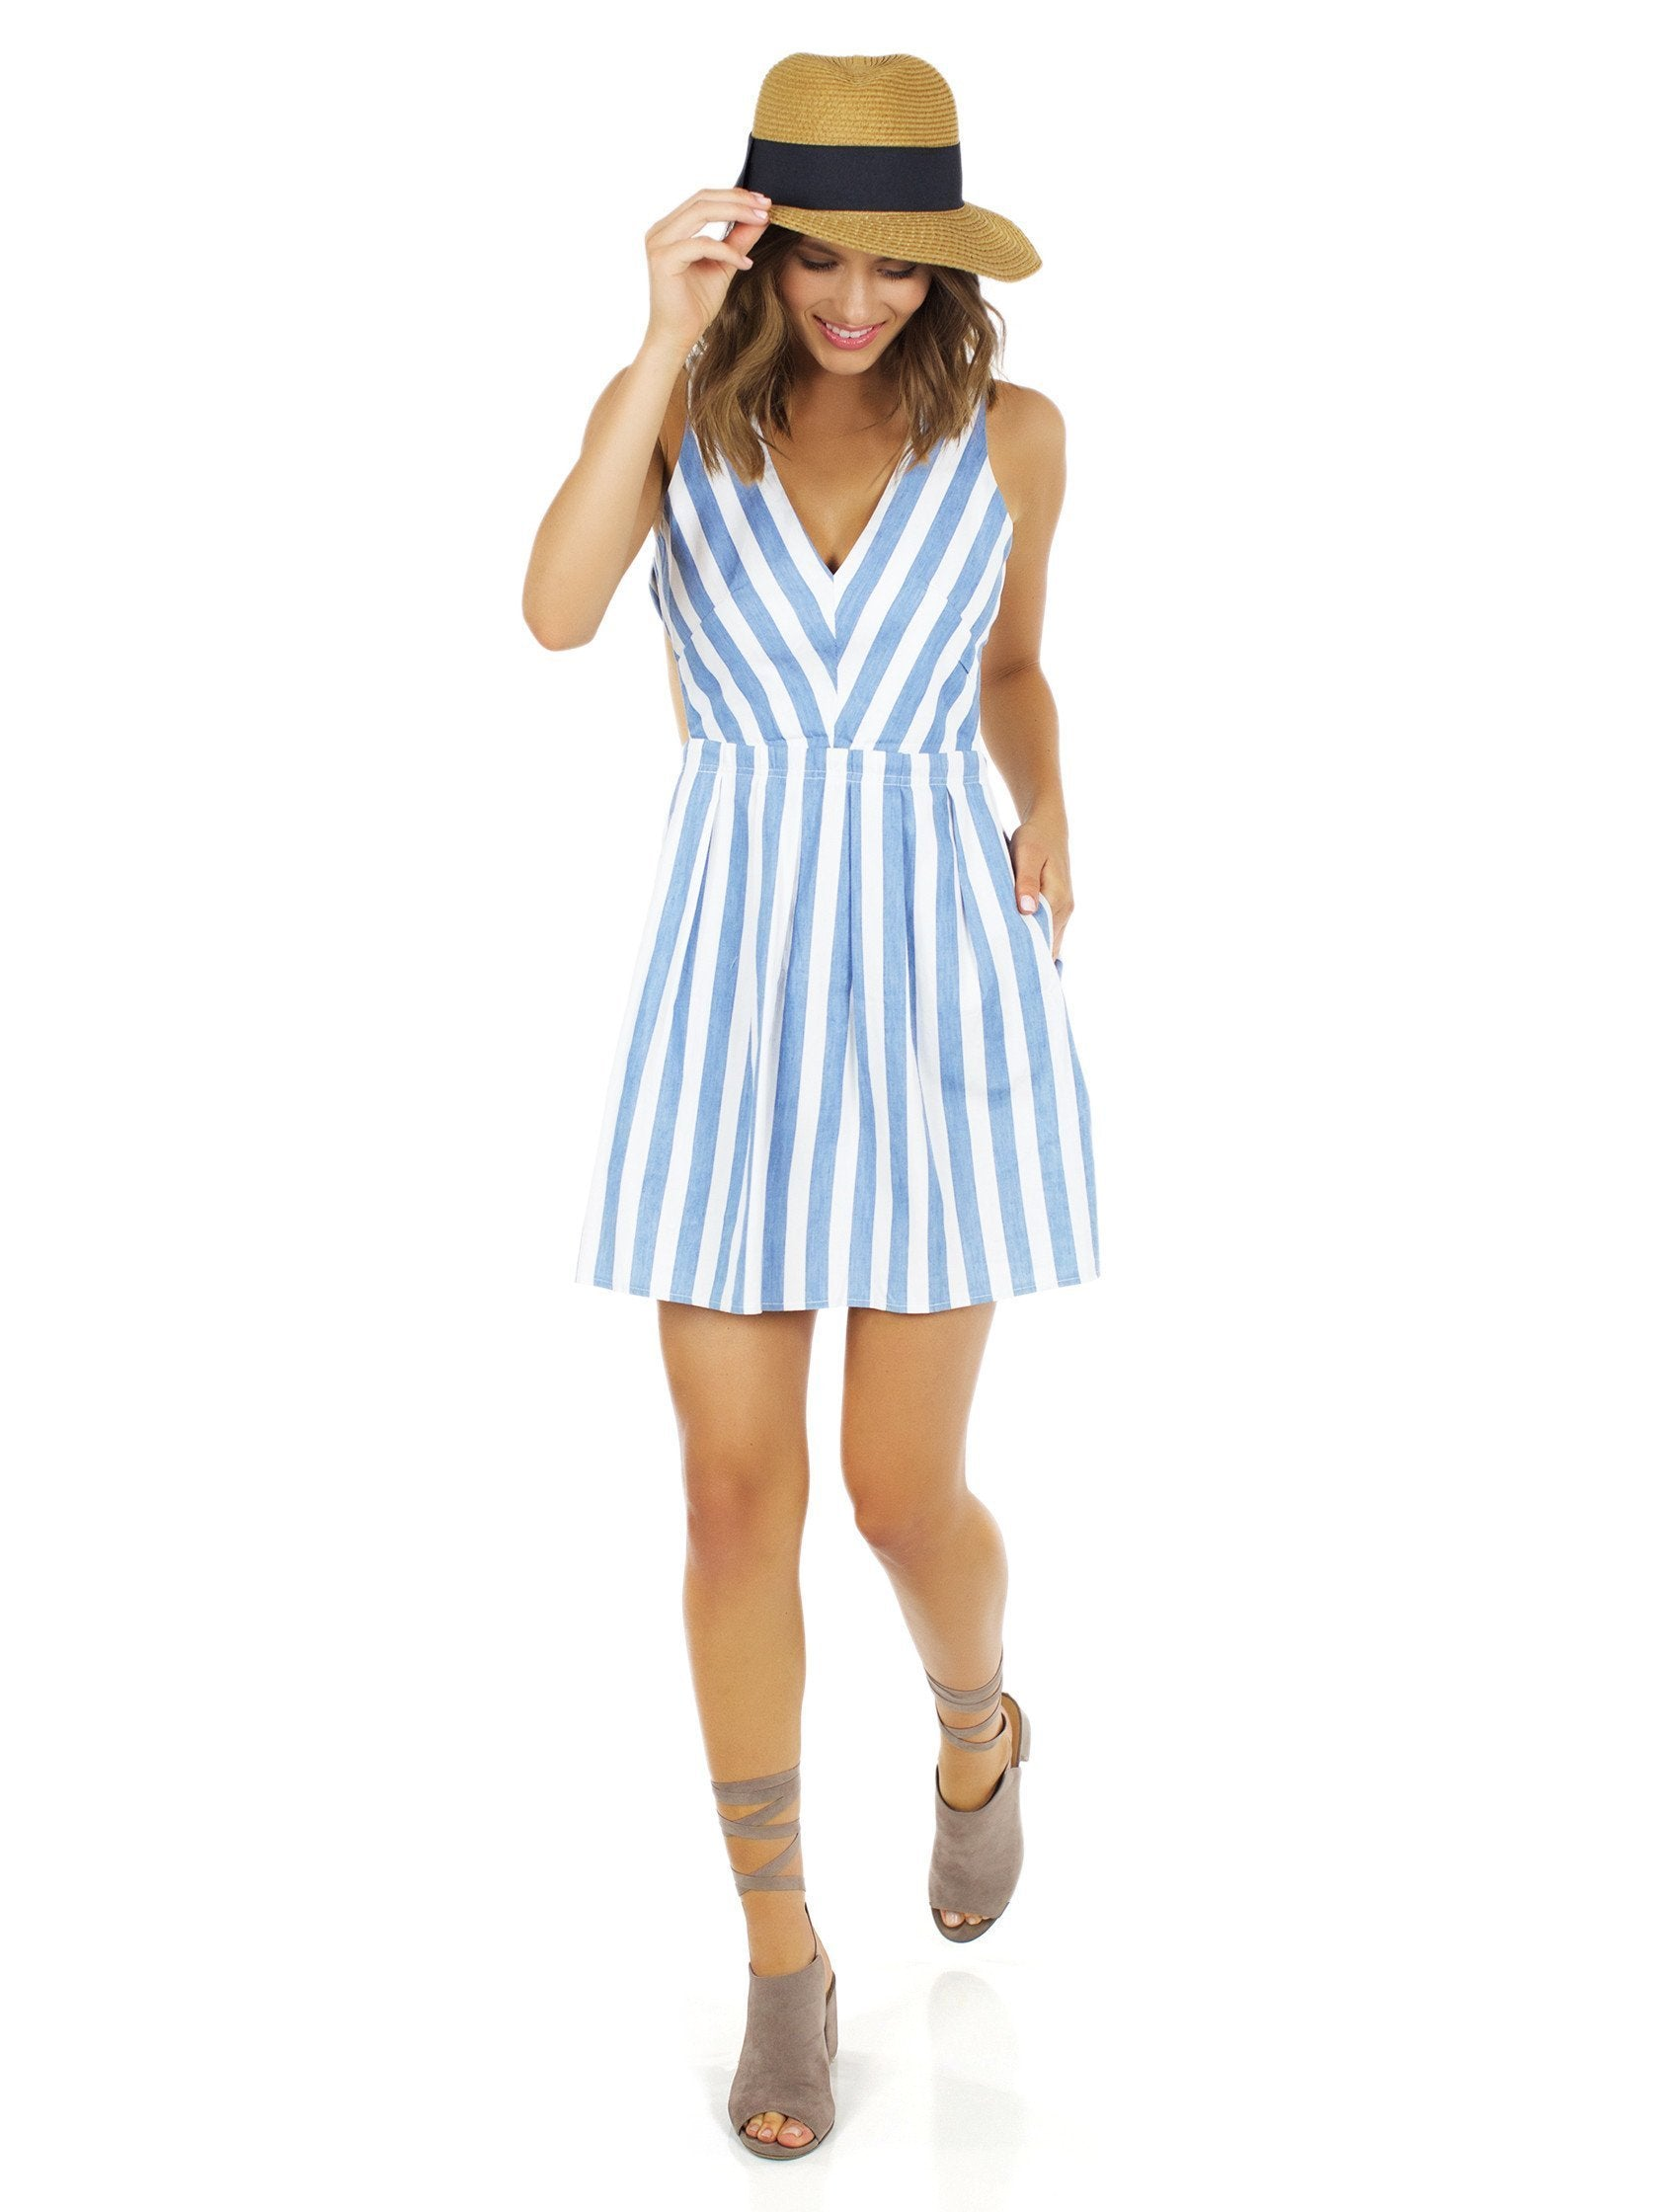 Girl outfit in a dress rental from Lost In Lunar called Alexis Stripe Dress